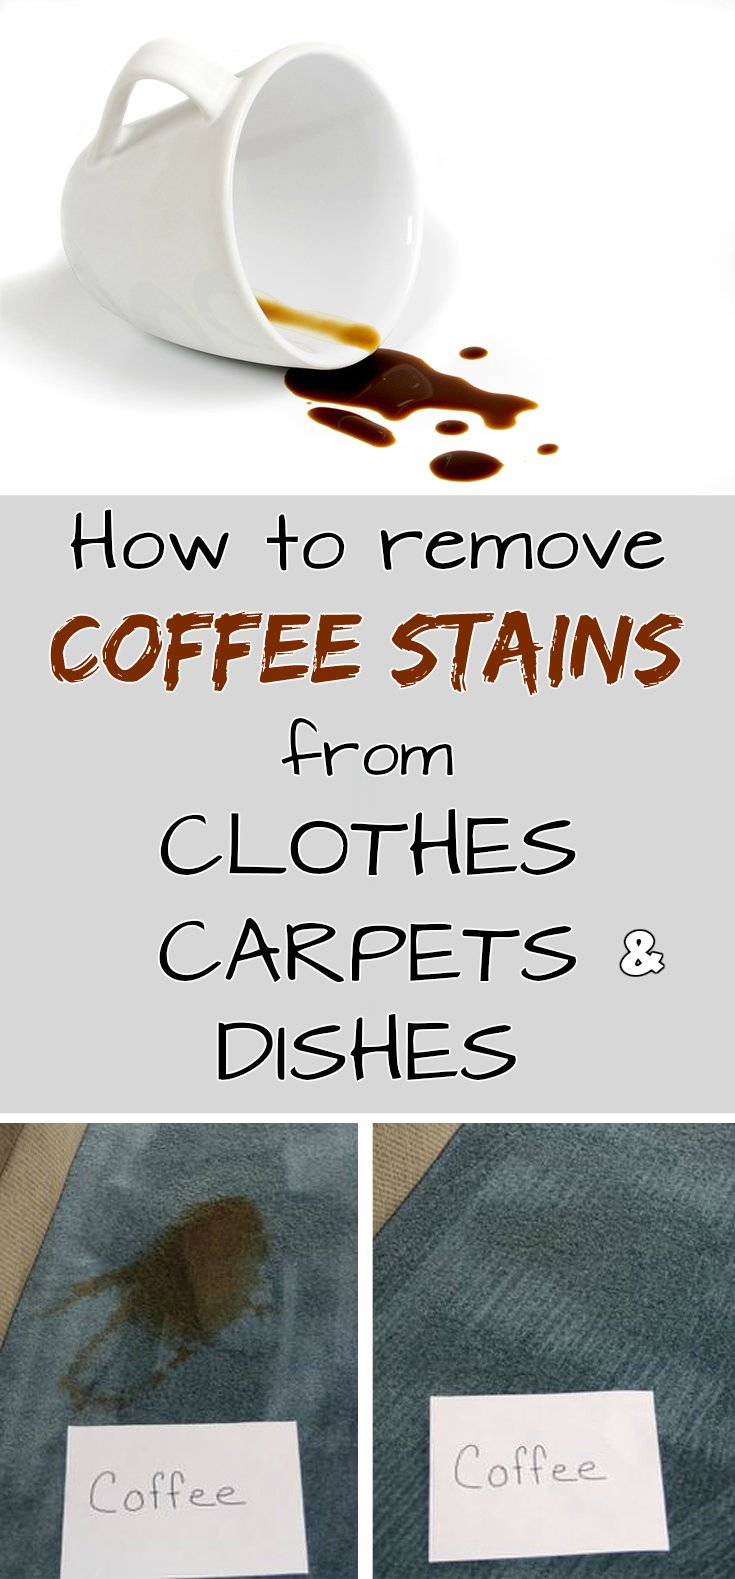 How To Remove Coffee Stains From Clothes Carpets And